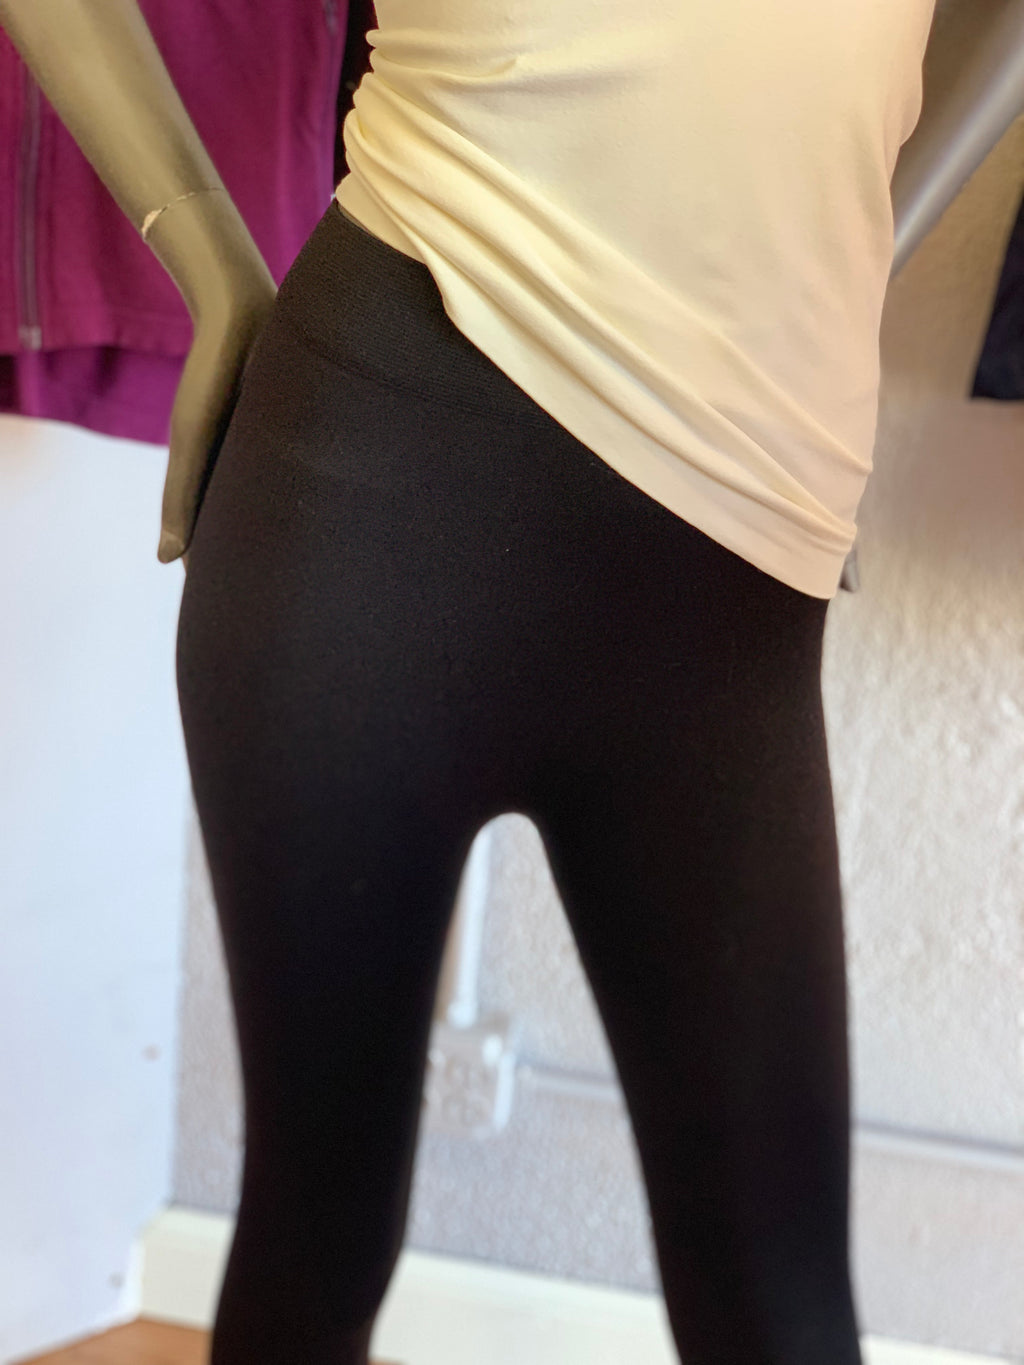 Bria Bella & Co - Bria Bella & Co. Signature Seamless - Leggings